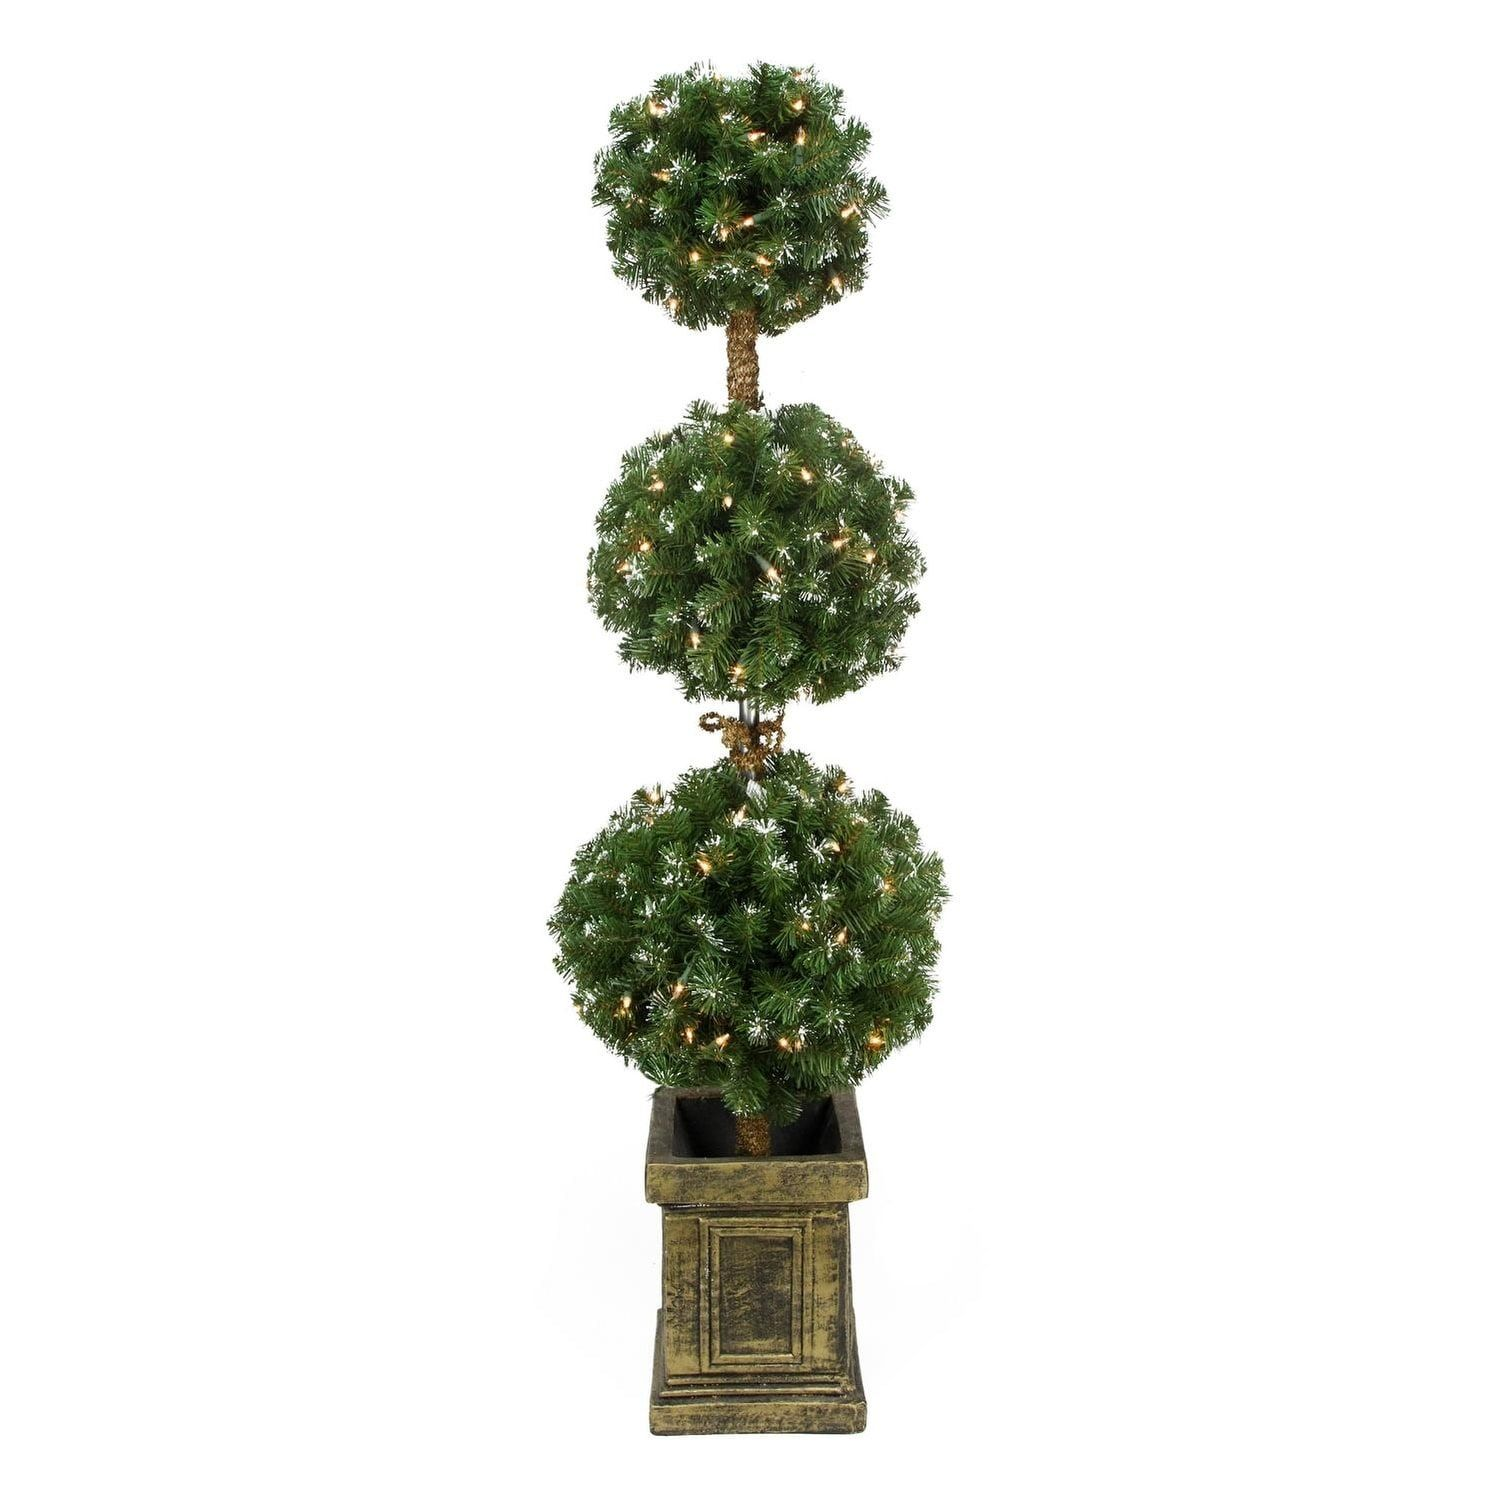 Frosted Slim Christmas Tree: 4.5' Pre-Lit Frosted Triple Ball Artificial Topiary Tree